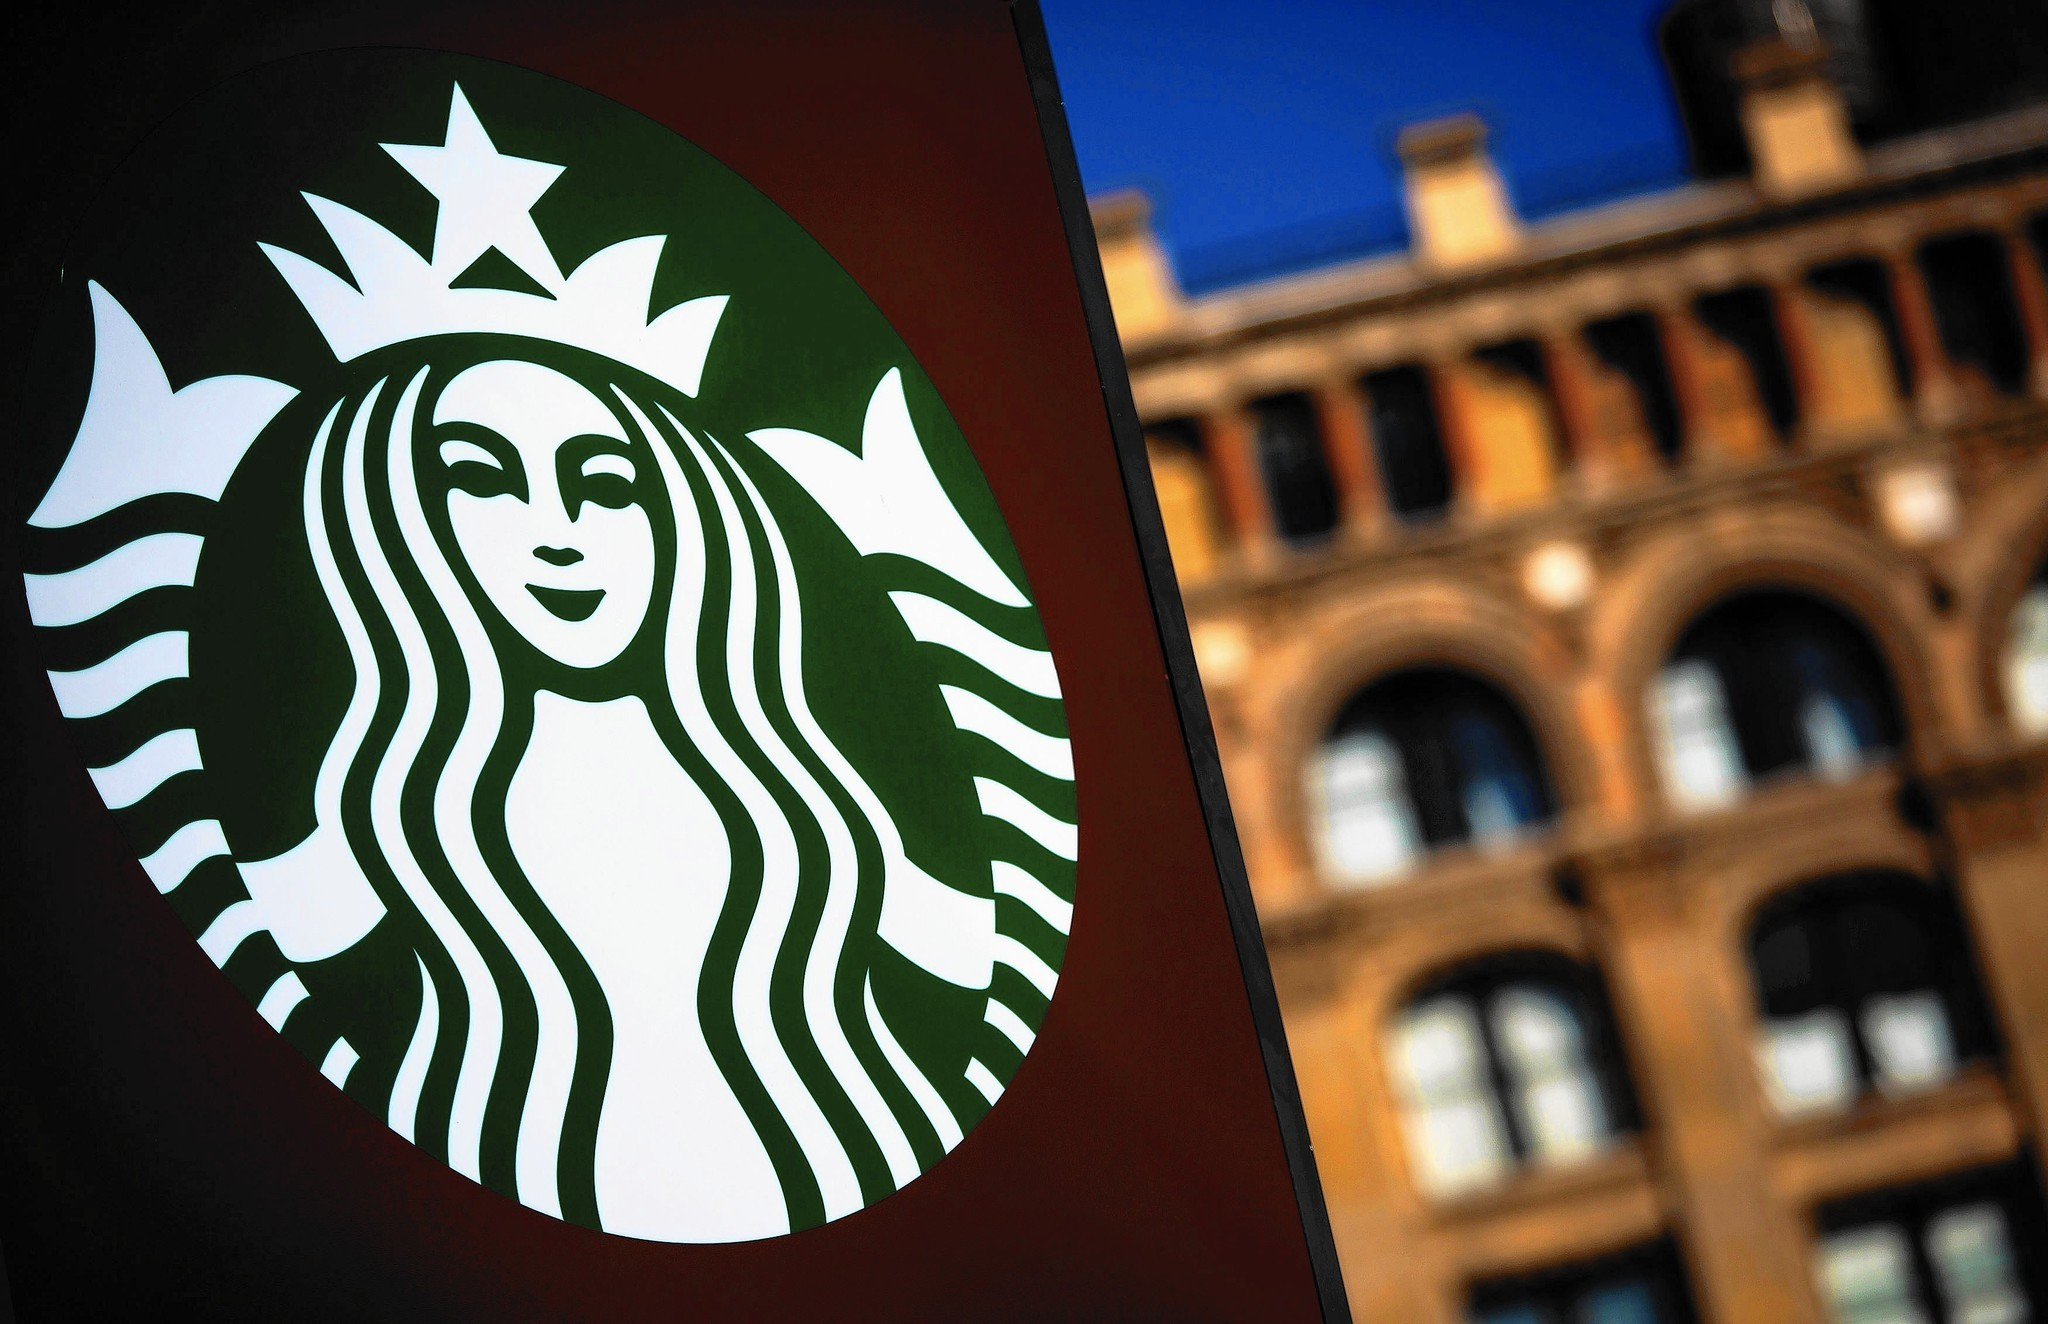 Starbucks says it will roll out delivery service to some markets